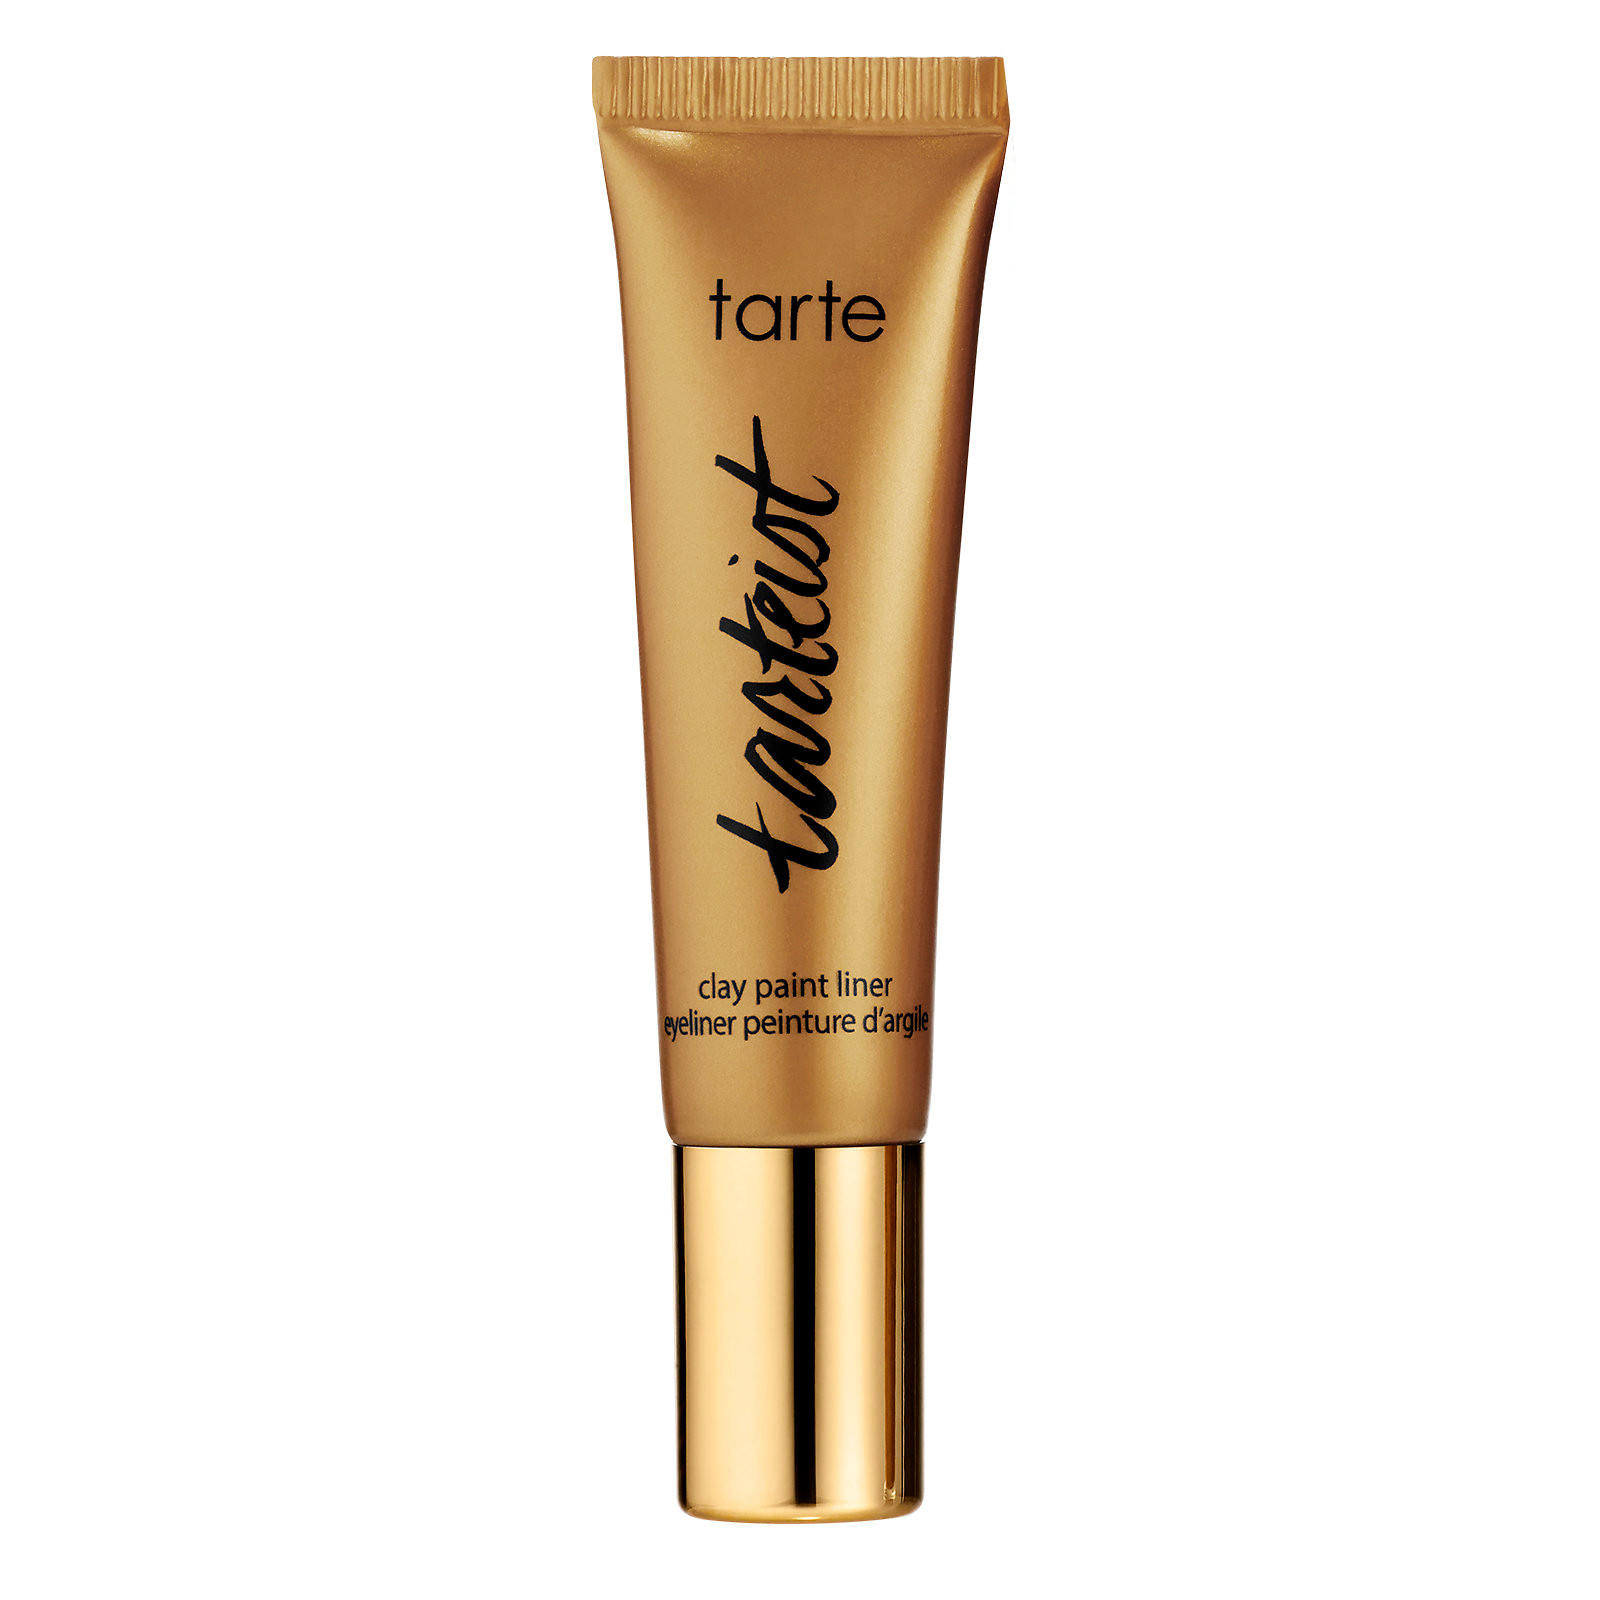 Tarte Tarteist Clay Paint Liner Gold 6g